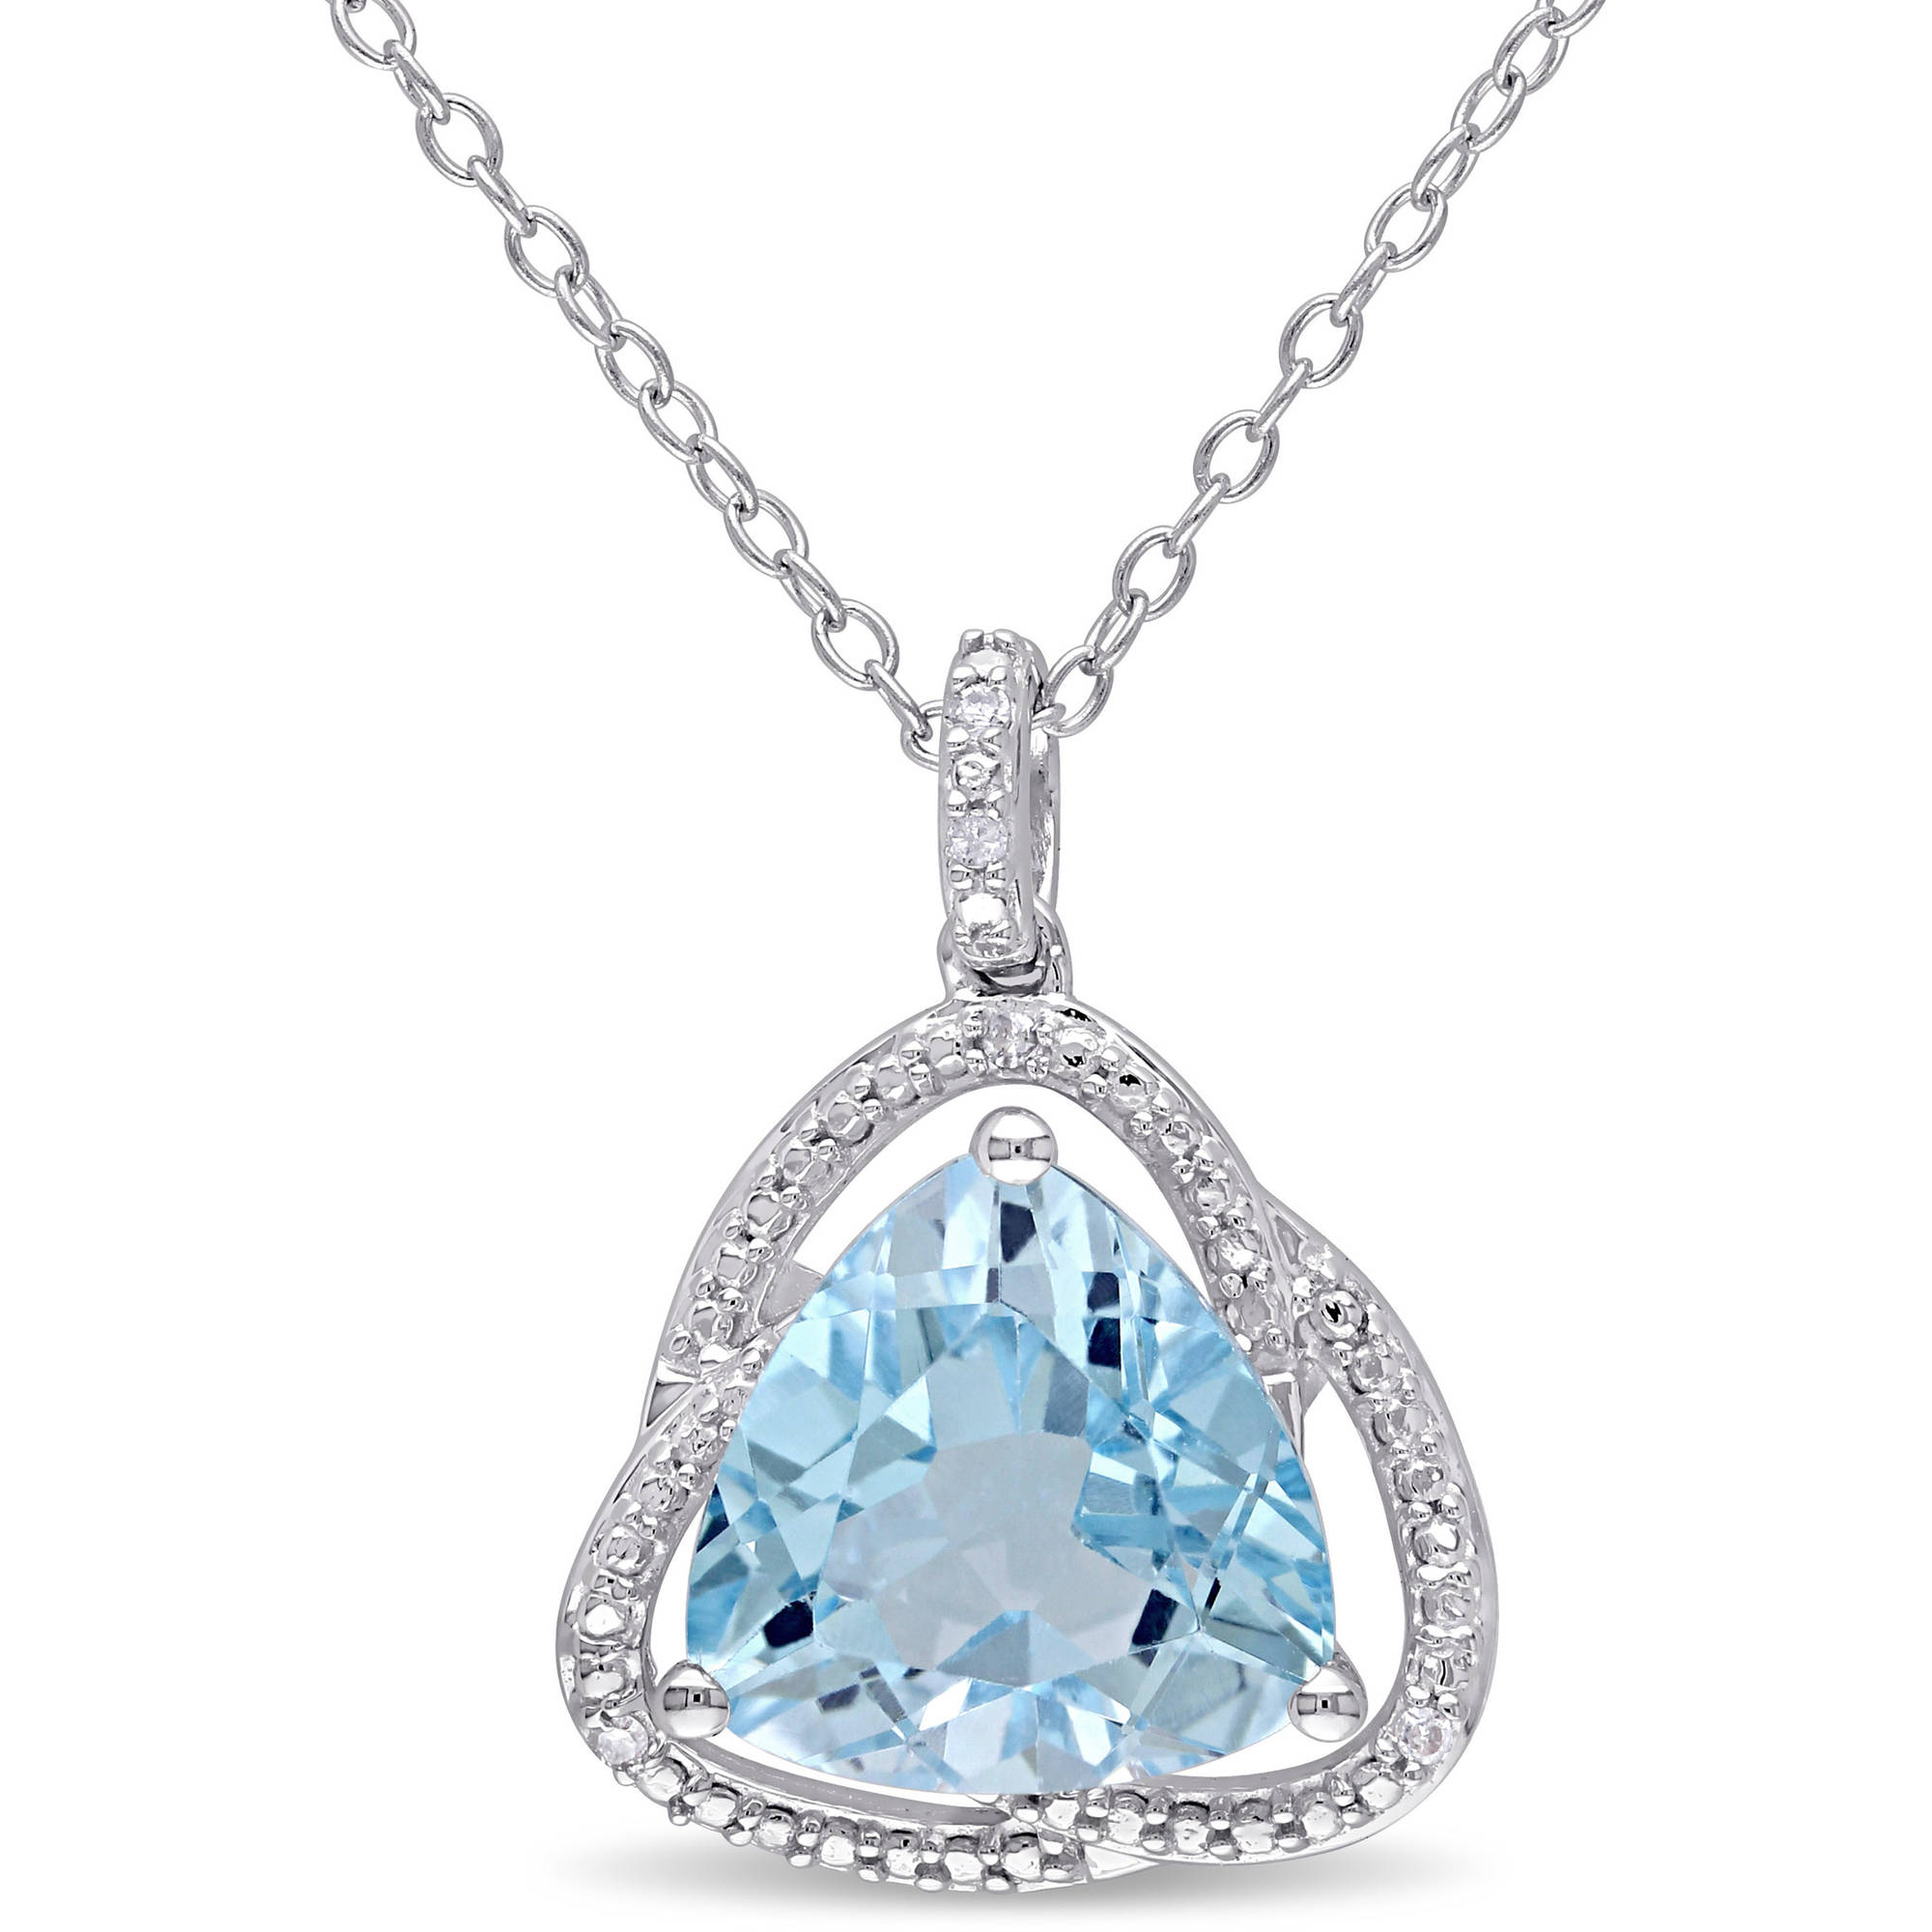 Tangelo 4-1/5 Carat T.G.W. Sky Blue Topaz and Diamond-Accent Sterling Silver Halo Pendant, 18""